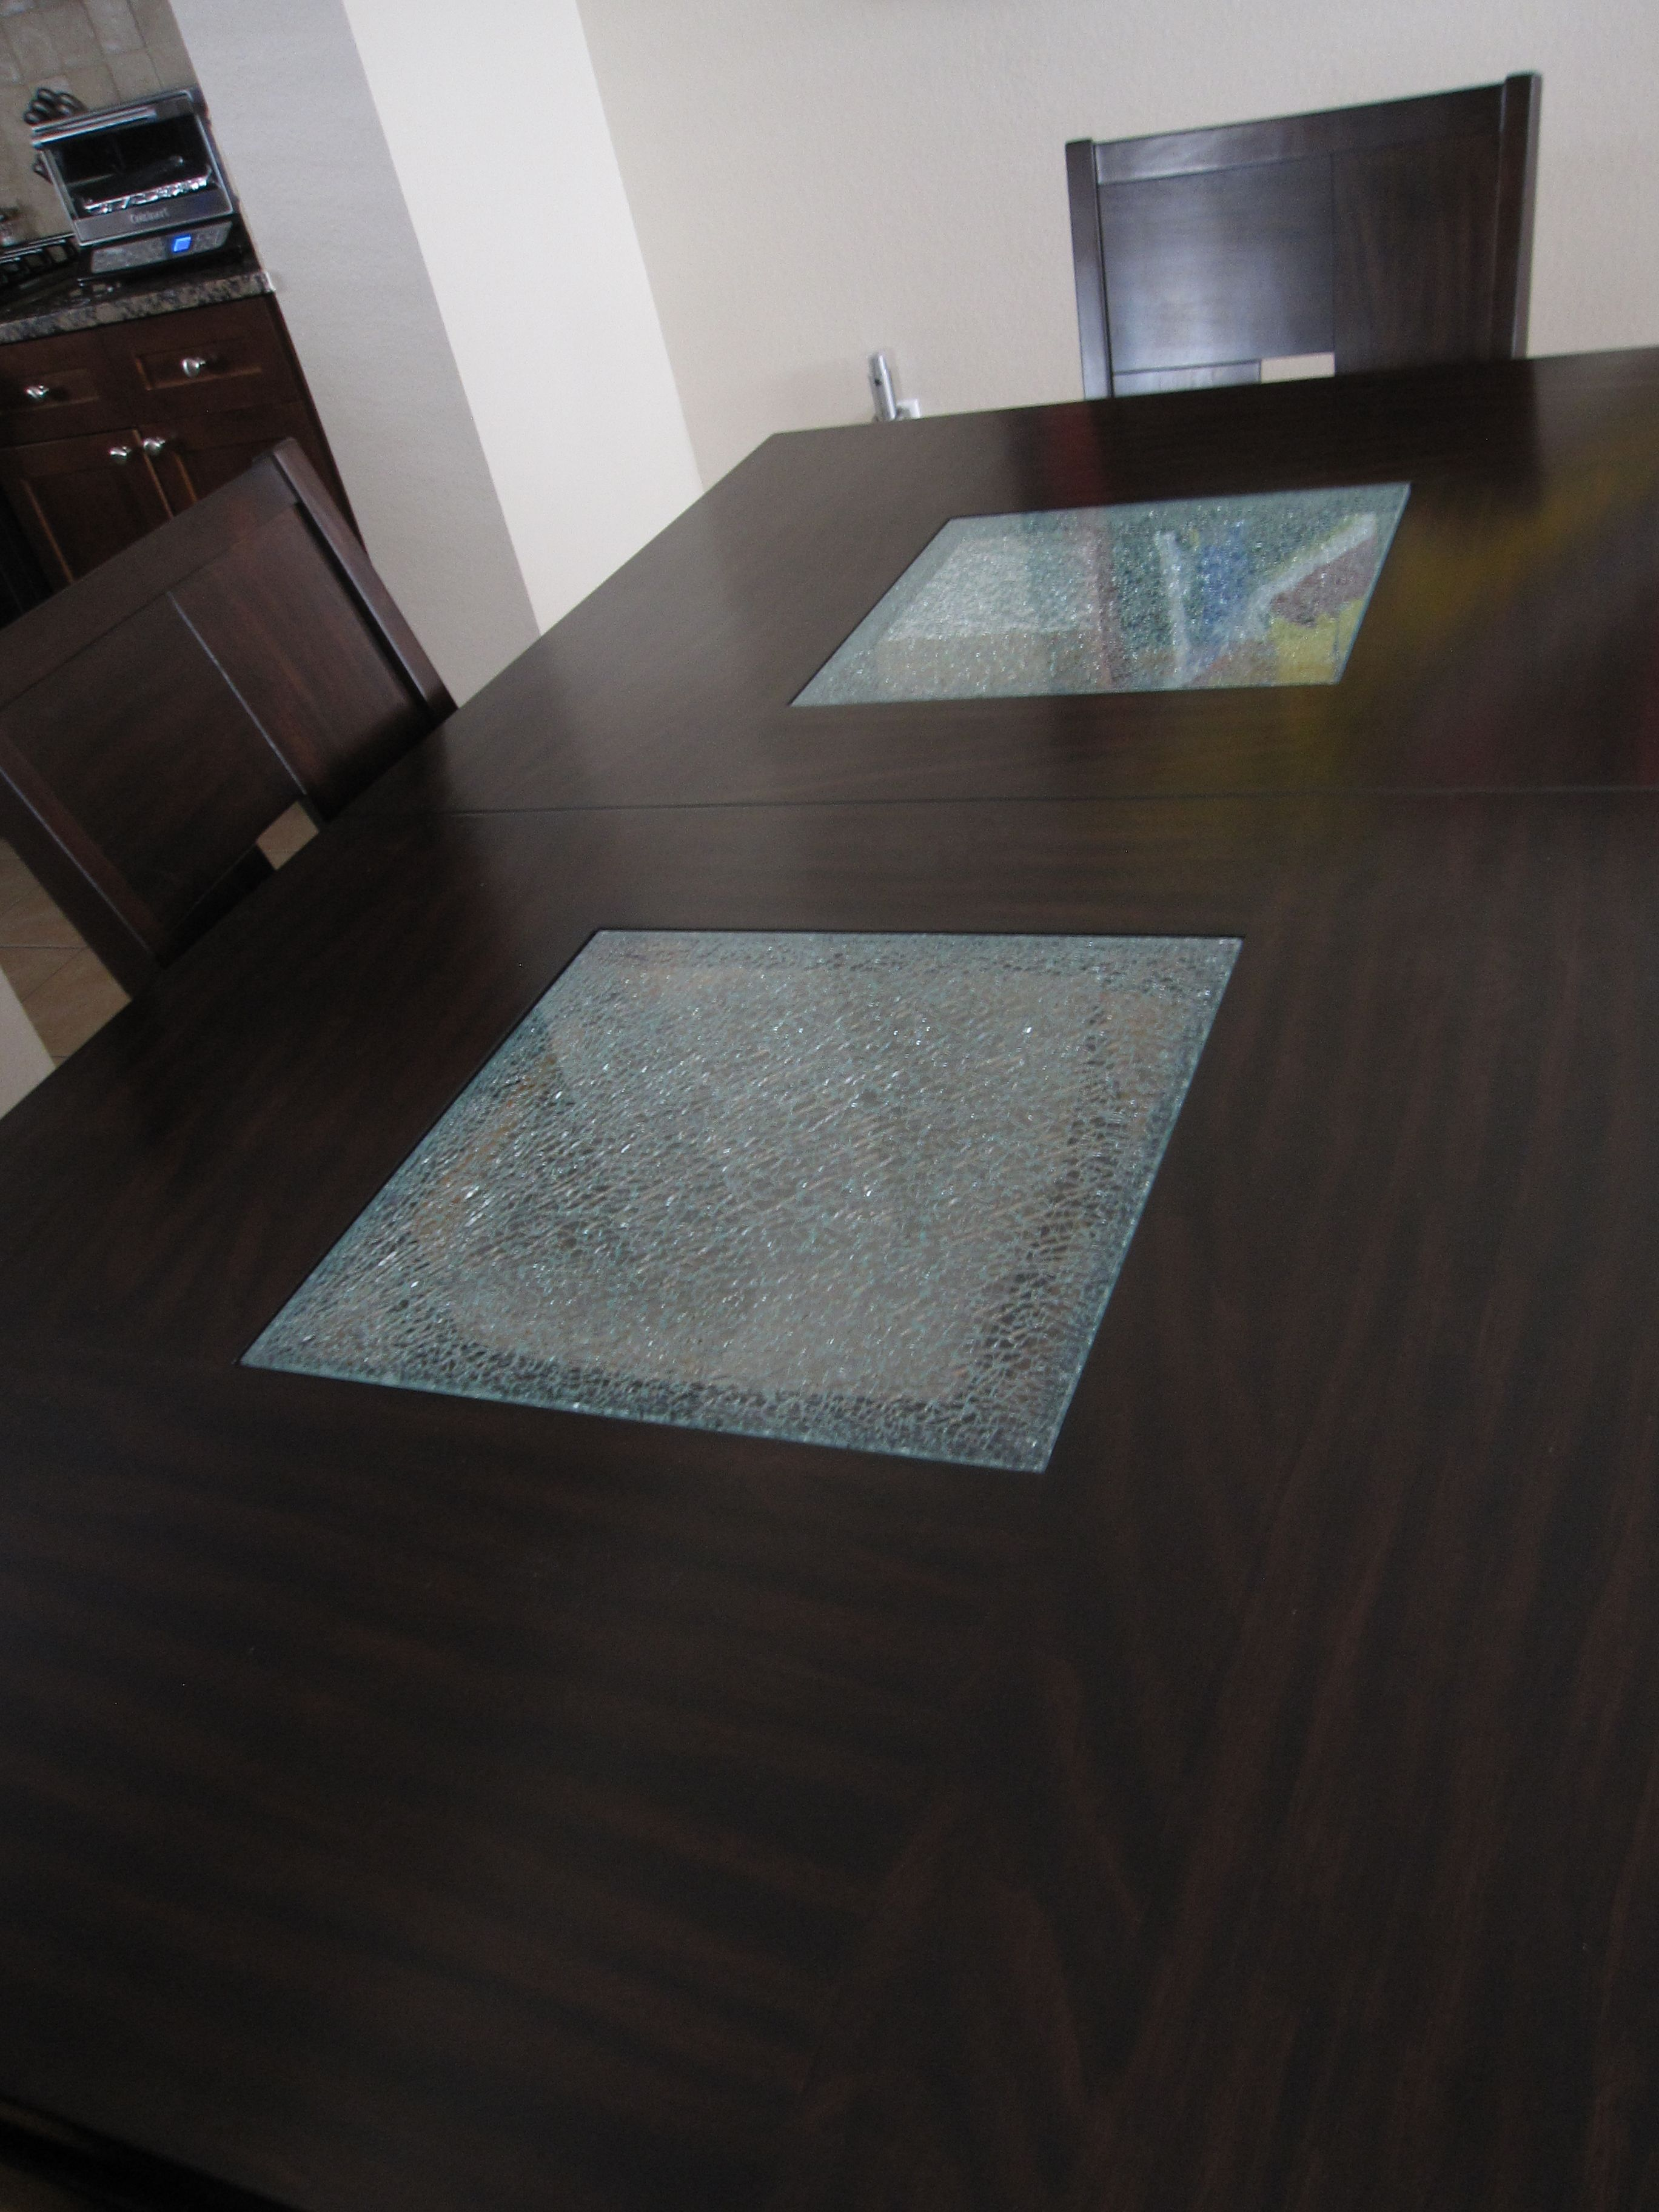 Dining Table Cracked Glass Accents Dining Table Dining Furniture [ 3648 x 2736 Pixel ]